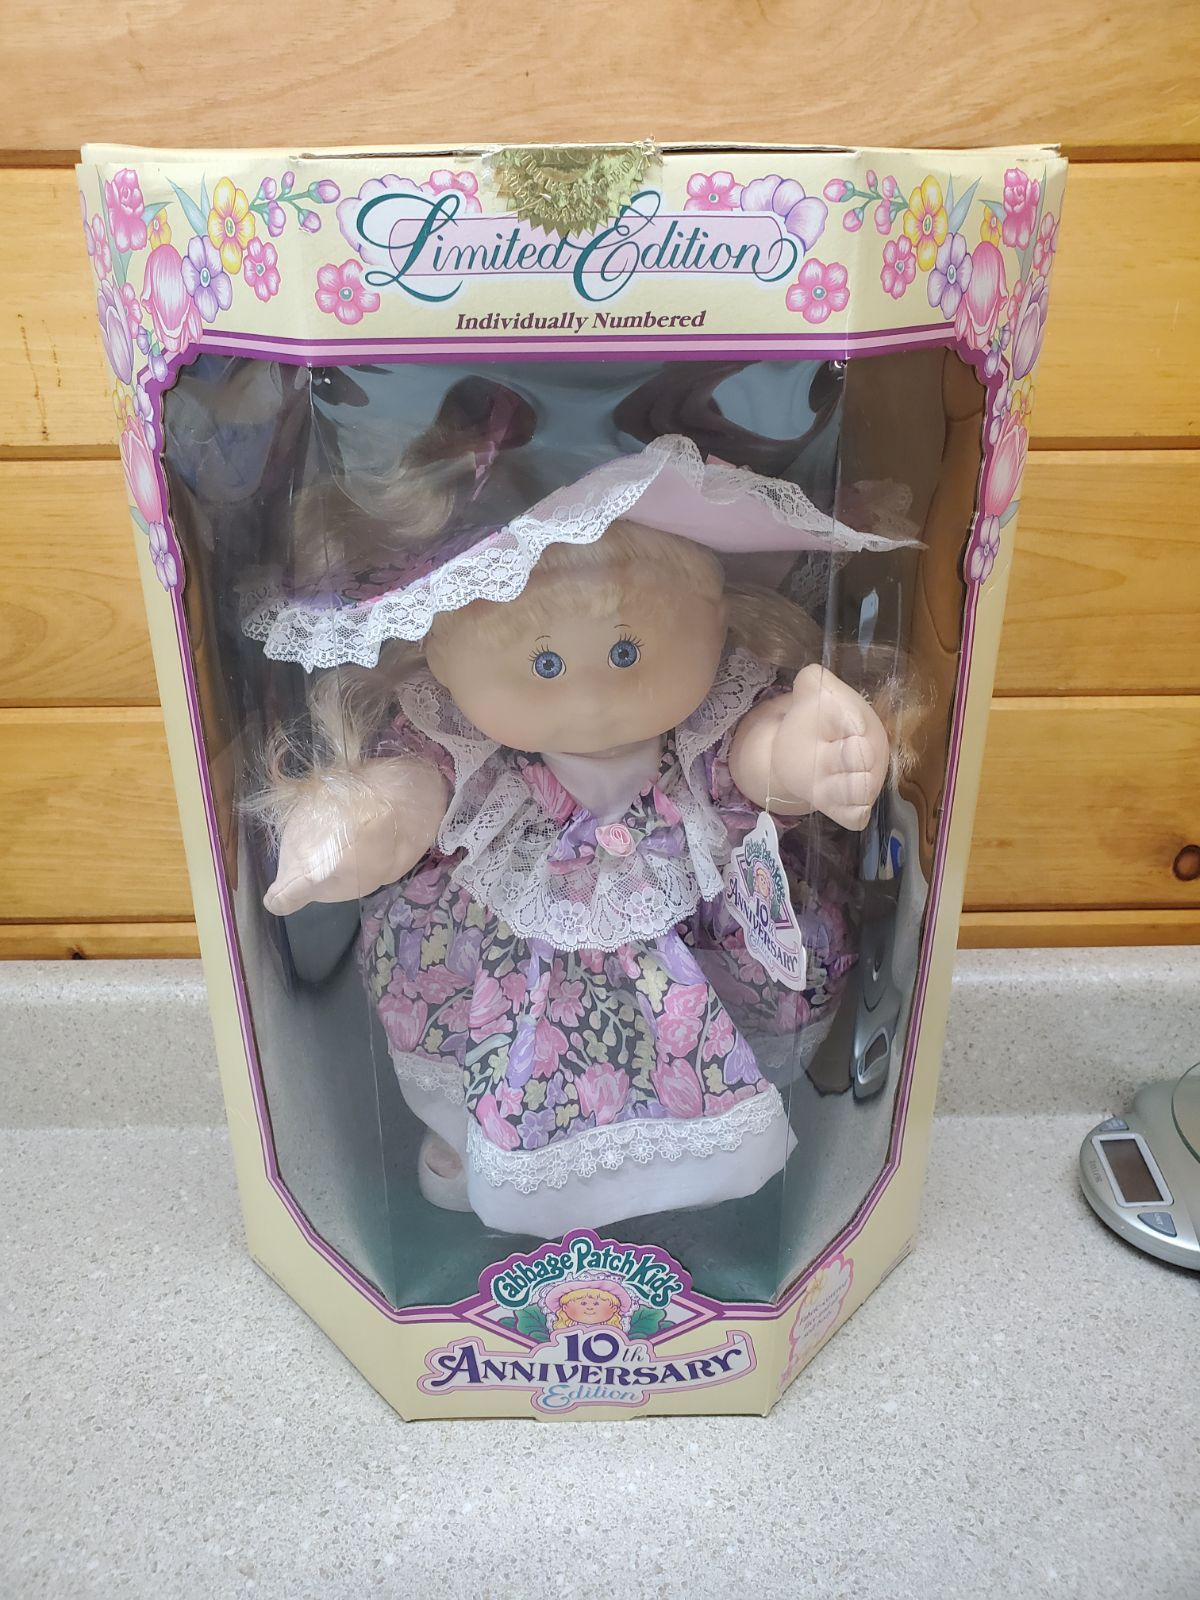 New In Box Vintage Limited 10th Anniversary Edition Cabbage Patch Kid Named Zora Mae Each Doll Is Indiv Cabbage Patch Kids Patch Kids Cabbage Patch Kids Names